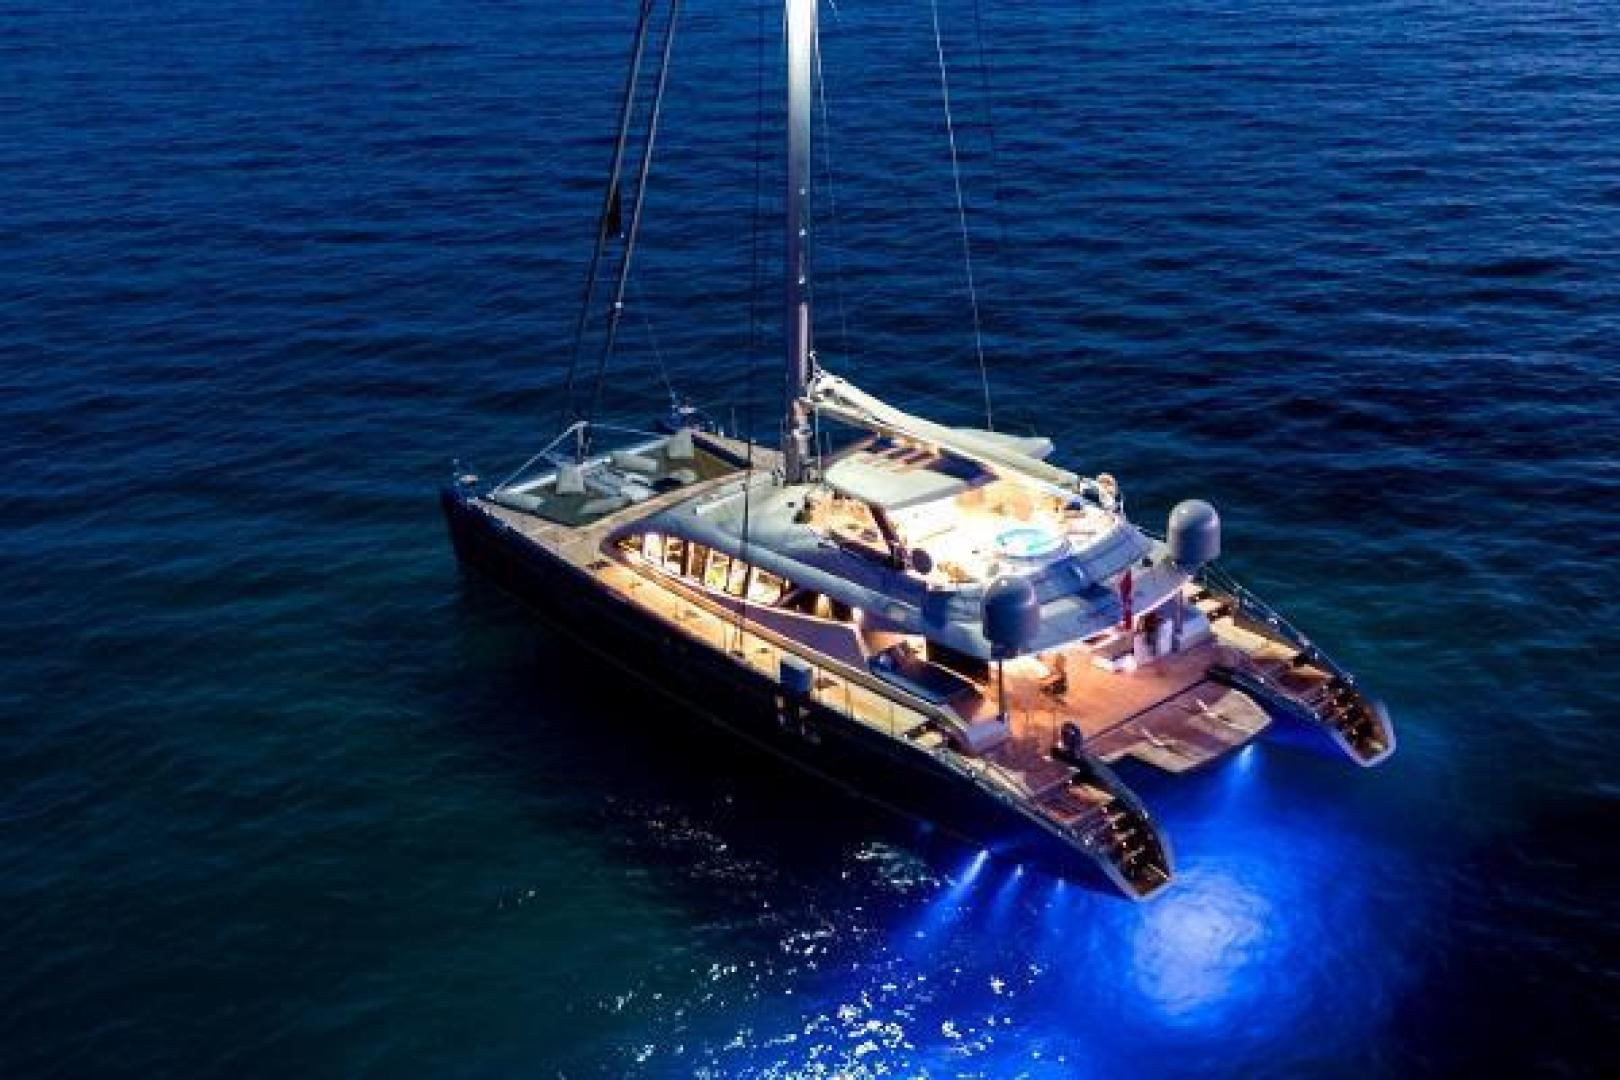 Catamaran-Blue Coast Yachts  2011-CARTOUCHE Antigua & Barbuda-1296524 | Thumbnail